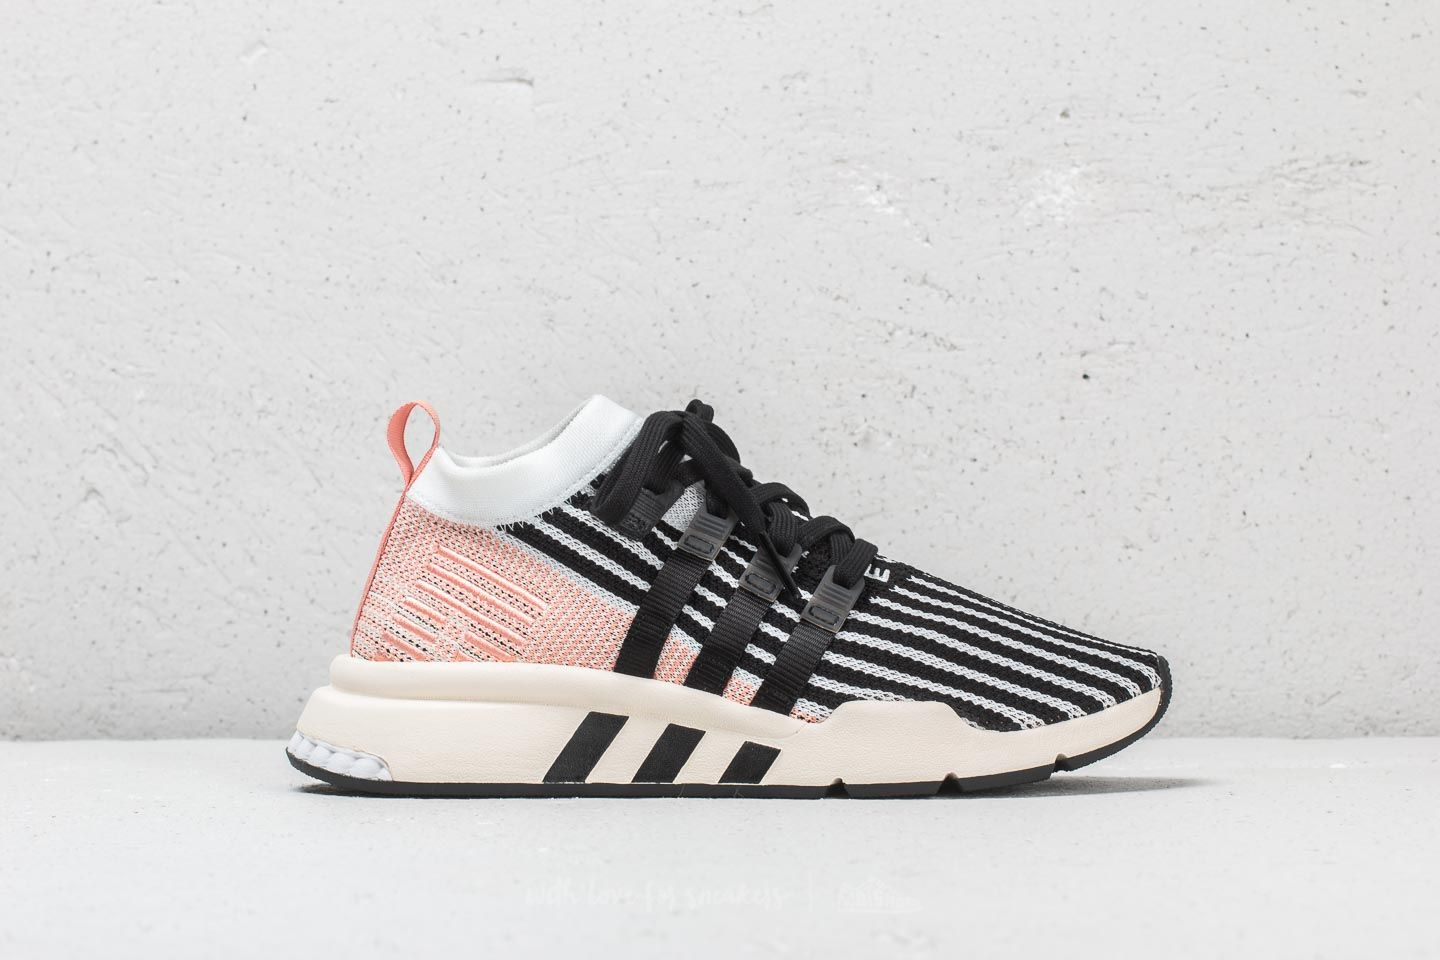 outlet store d42ac ec02c Adidas EQT Support Mid ADV PK Cloud White Core Black Trace Pink at a